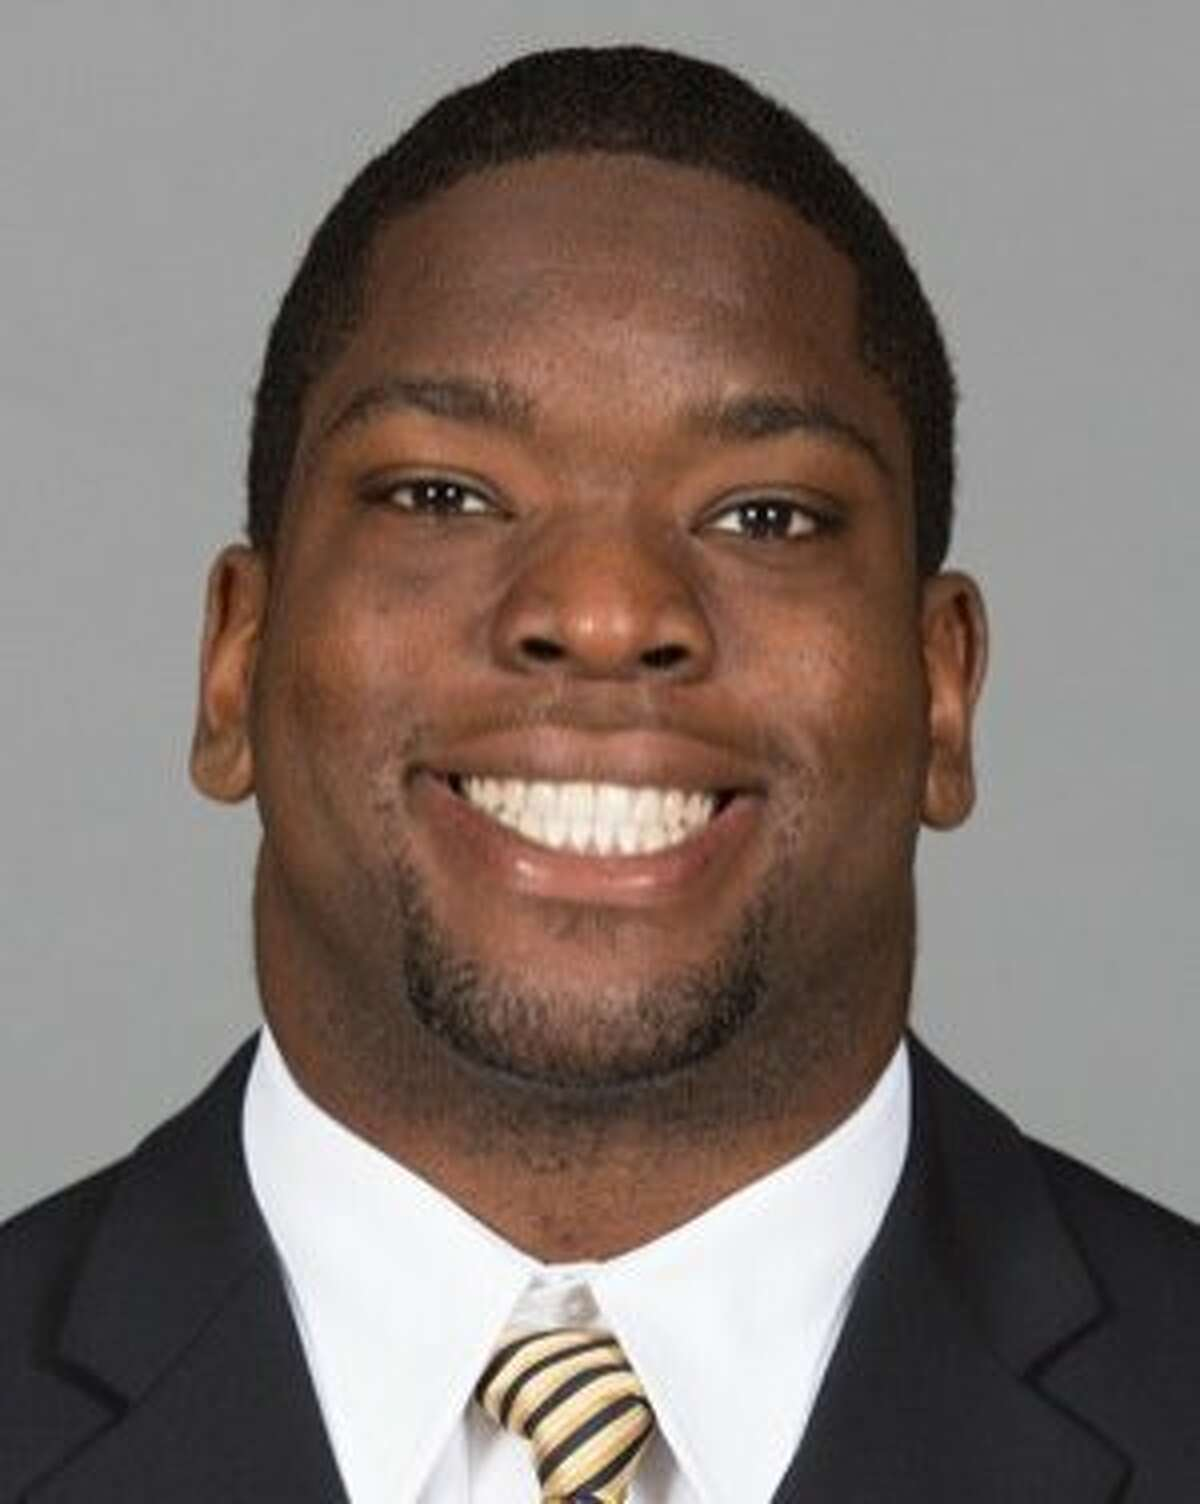 This undated photo released by GoldenBearSports.com shows California football player Ted Agu. Agu died Friday morning, Feb. 7, 2014. He was 21. The school announced Agu's death and said its thoughts and prayers were with Agu's family, friends and teammates. The school said it would give more information about the circumstances later. (AP Photo/GoldenBearSports.com, Nathan Phillips) MUST CREDIT GOLDENBEARSPORTS.COM